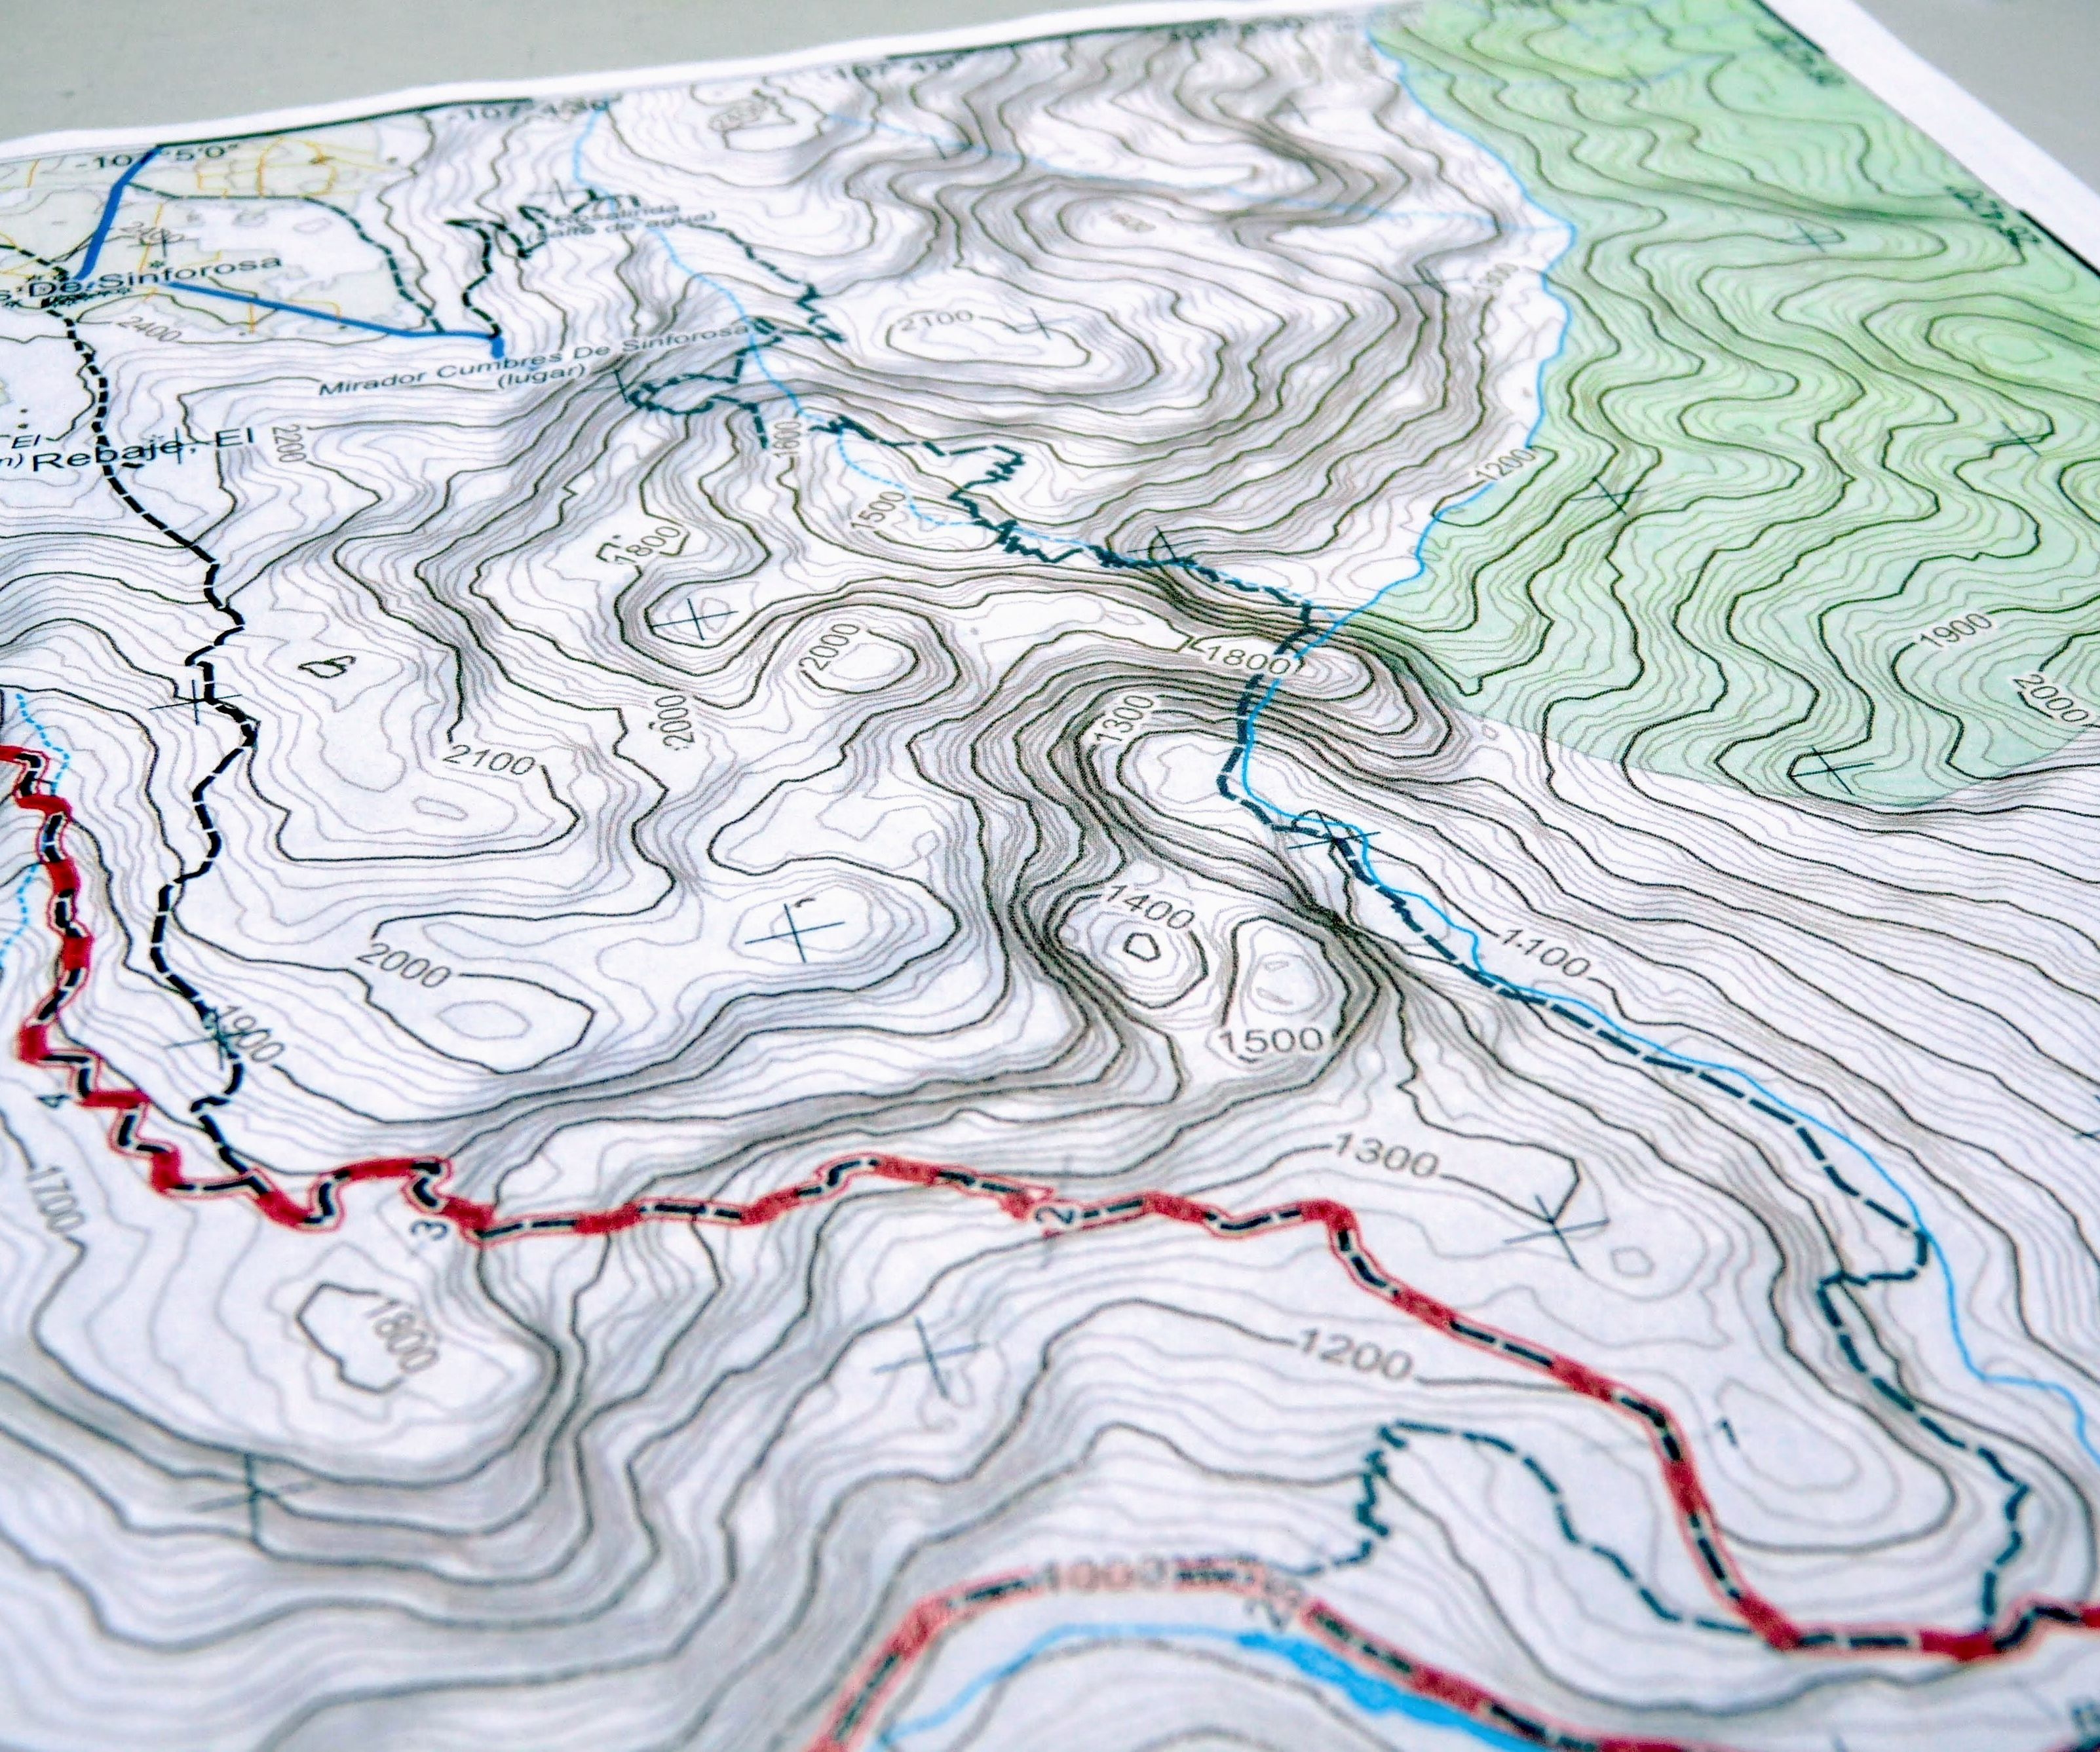 topographic map of my area How To Create Your Own Topographic Map 17 Steps With Pictures Instructables